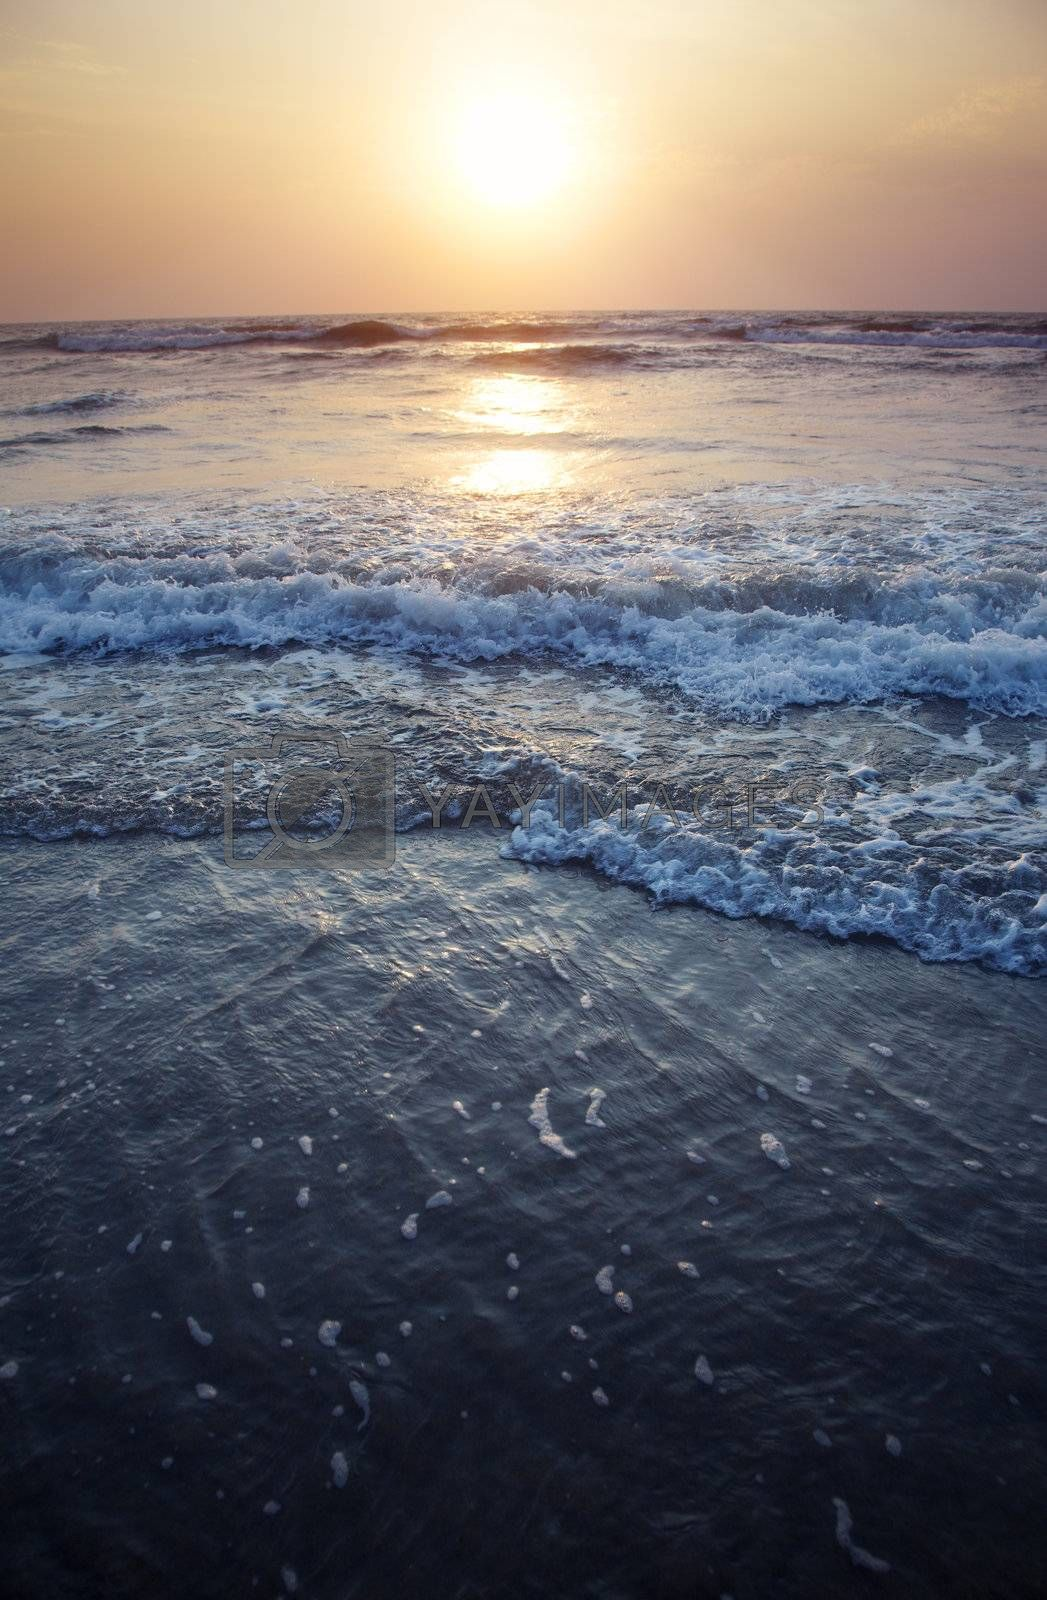 Twilight sea during sunset. Vertical photo with dark and dramatic  colors